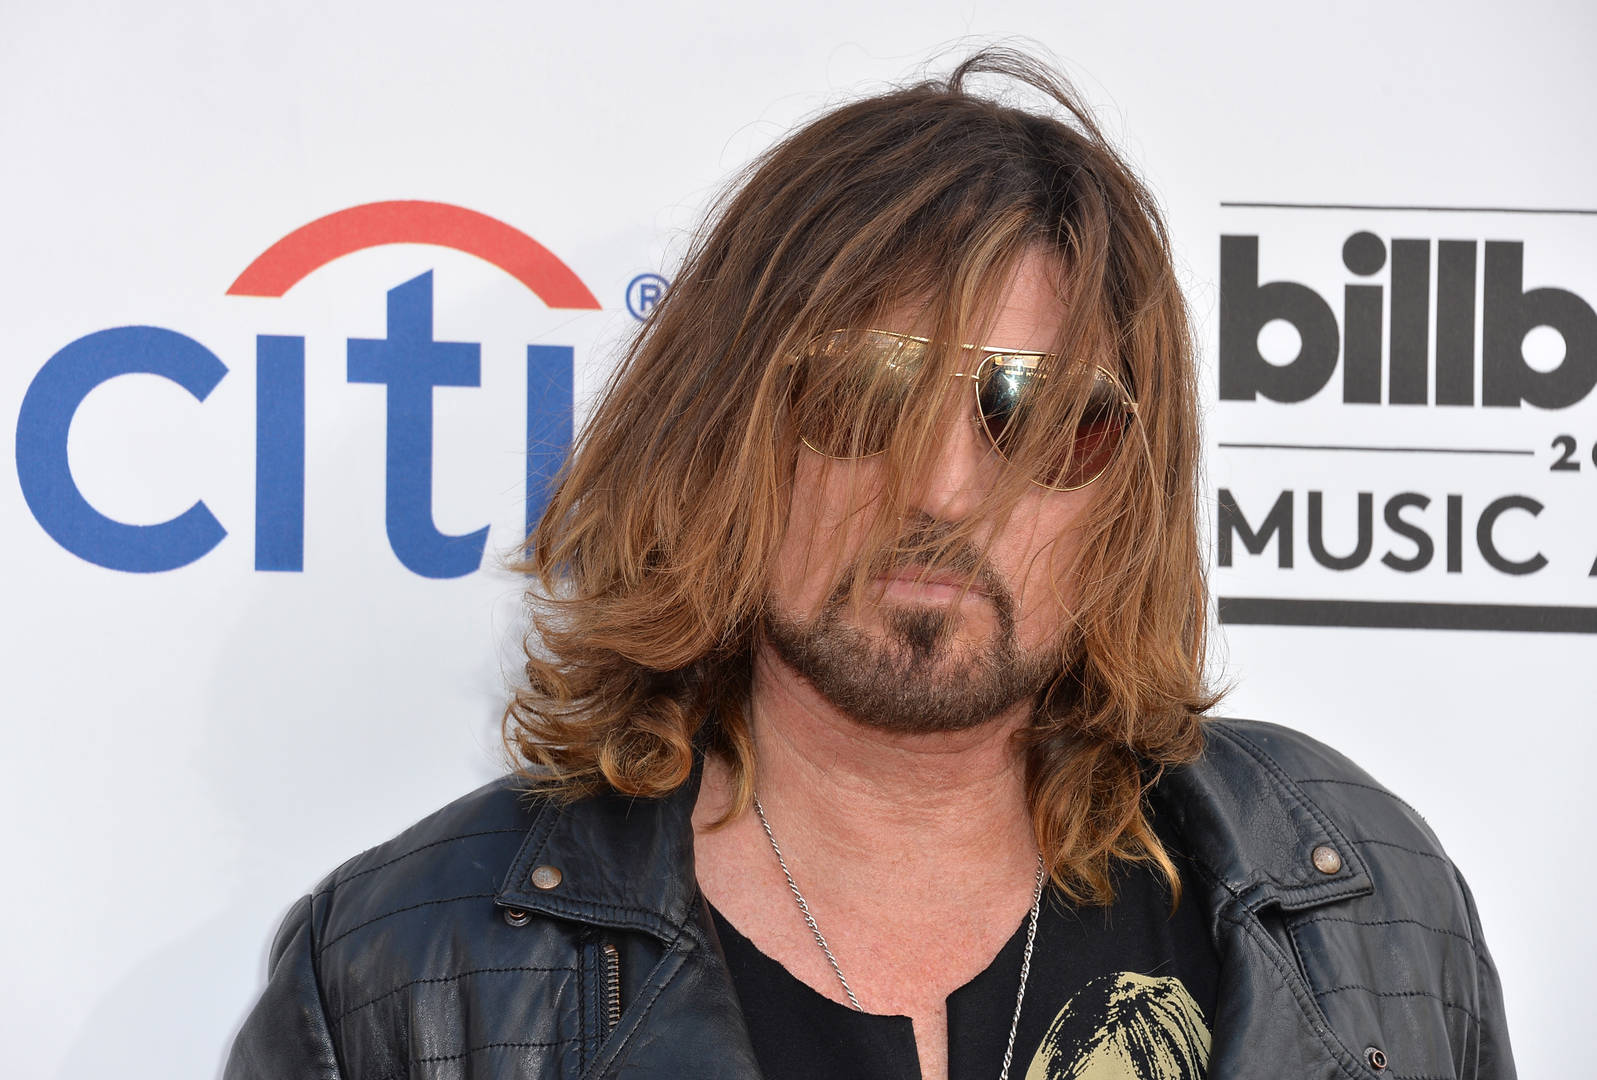 Kentucky native Billy Ray Cyrus joins forces with rapper on remix